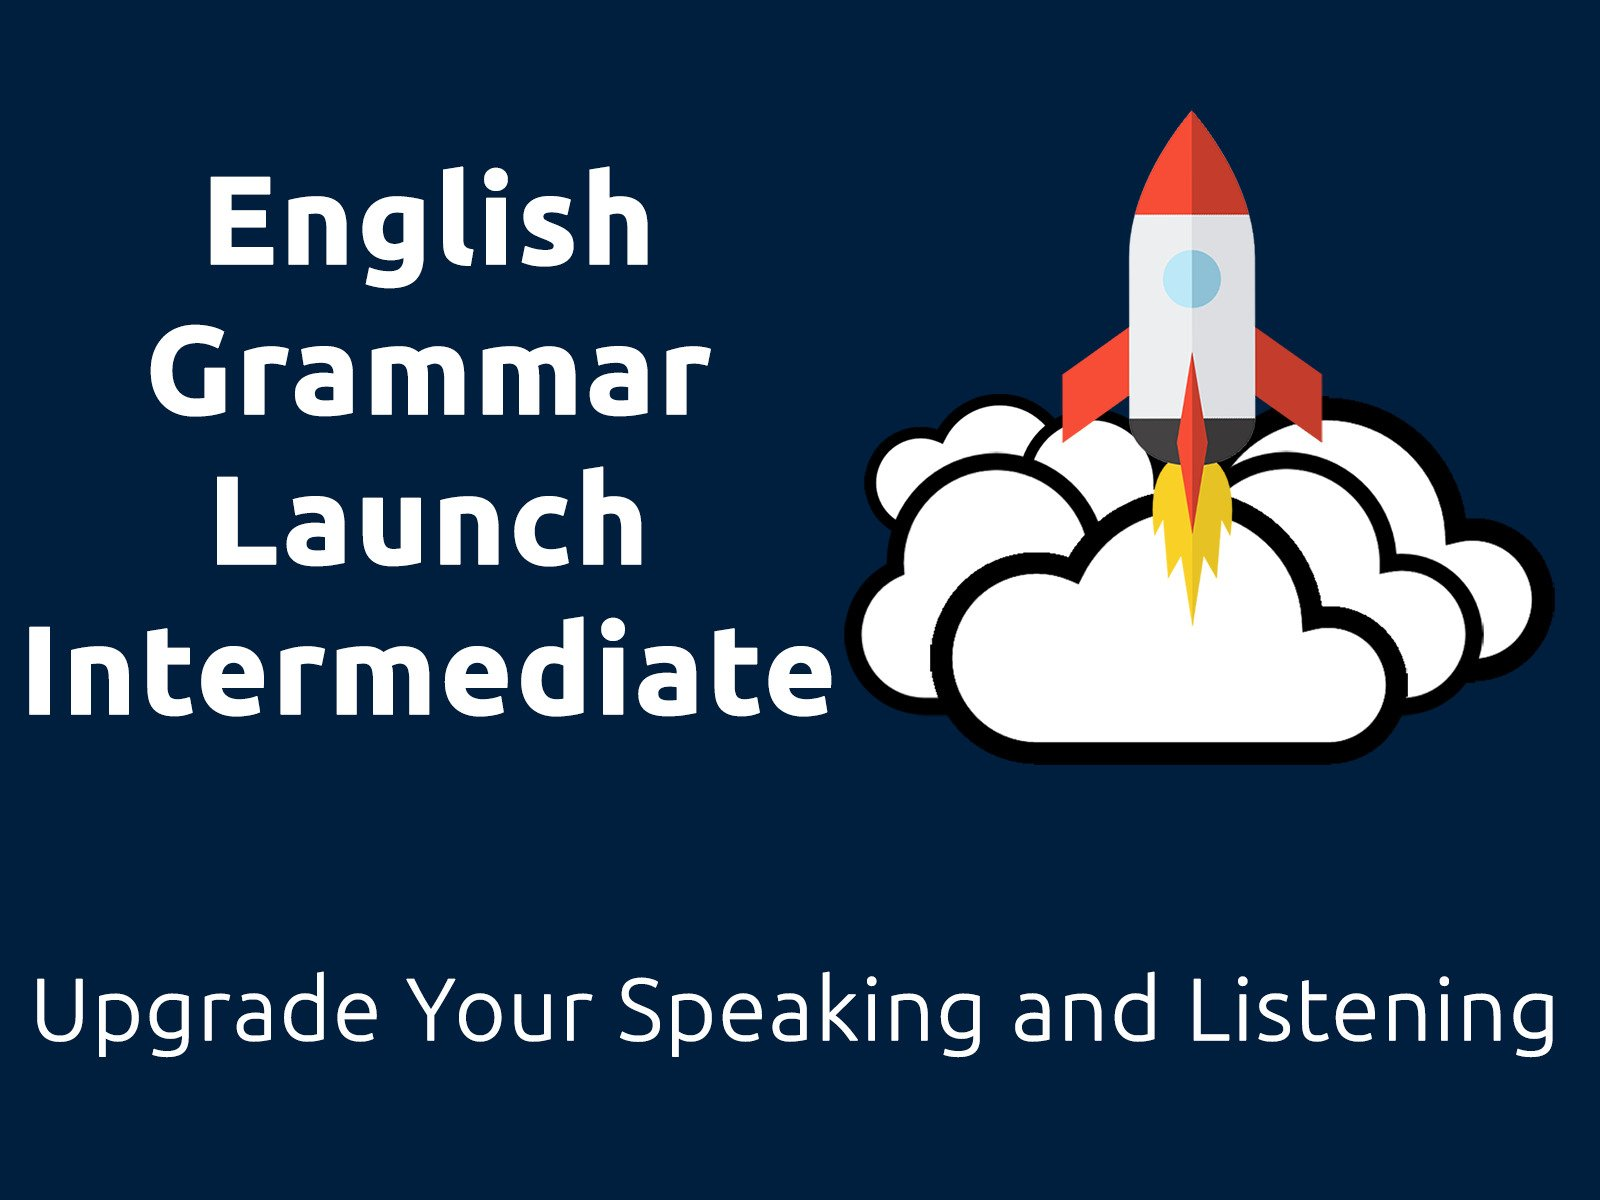 English Grammar Launch Intermediate: Upgrade Your Speaking and Listening on Amazon Prime Video UK